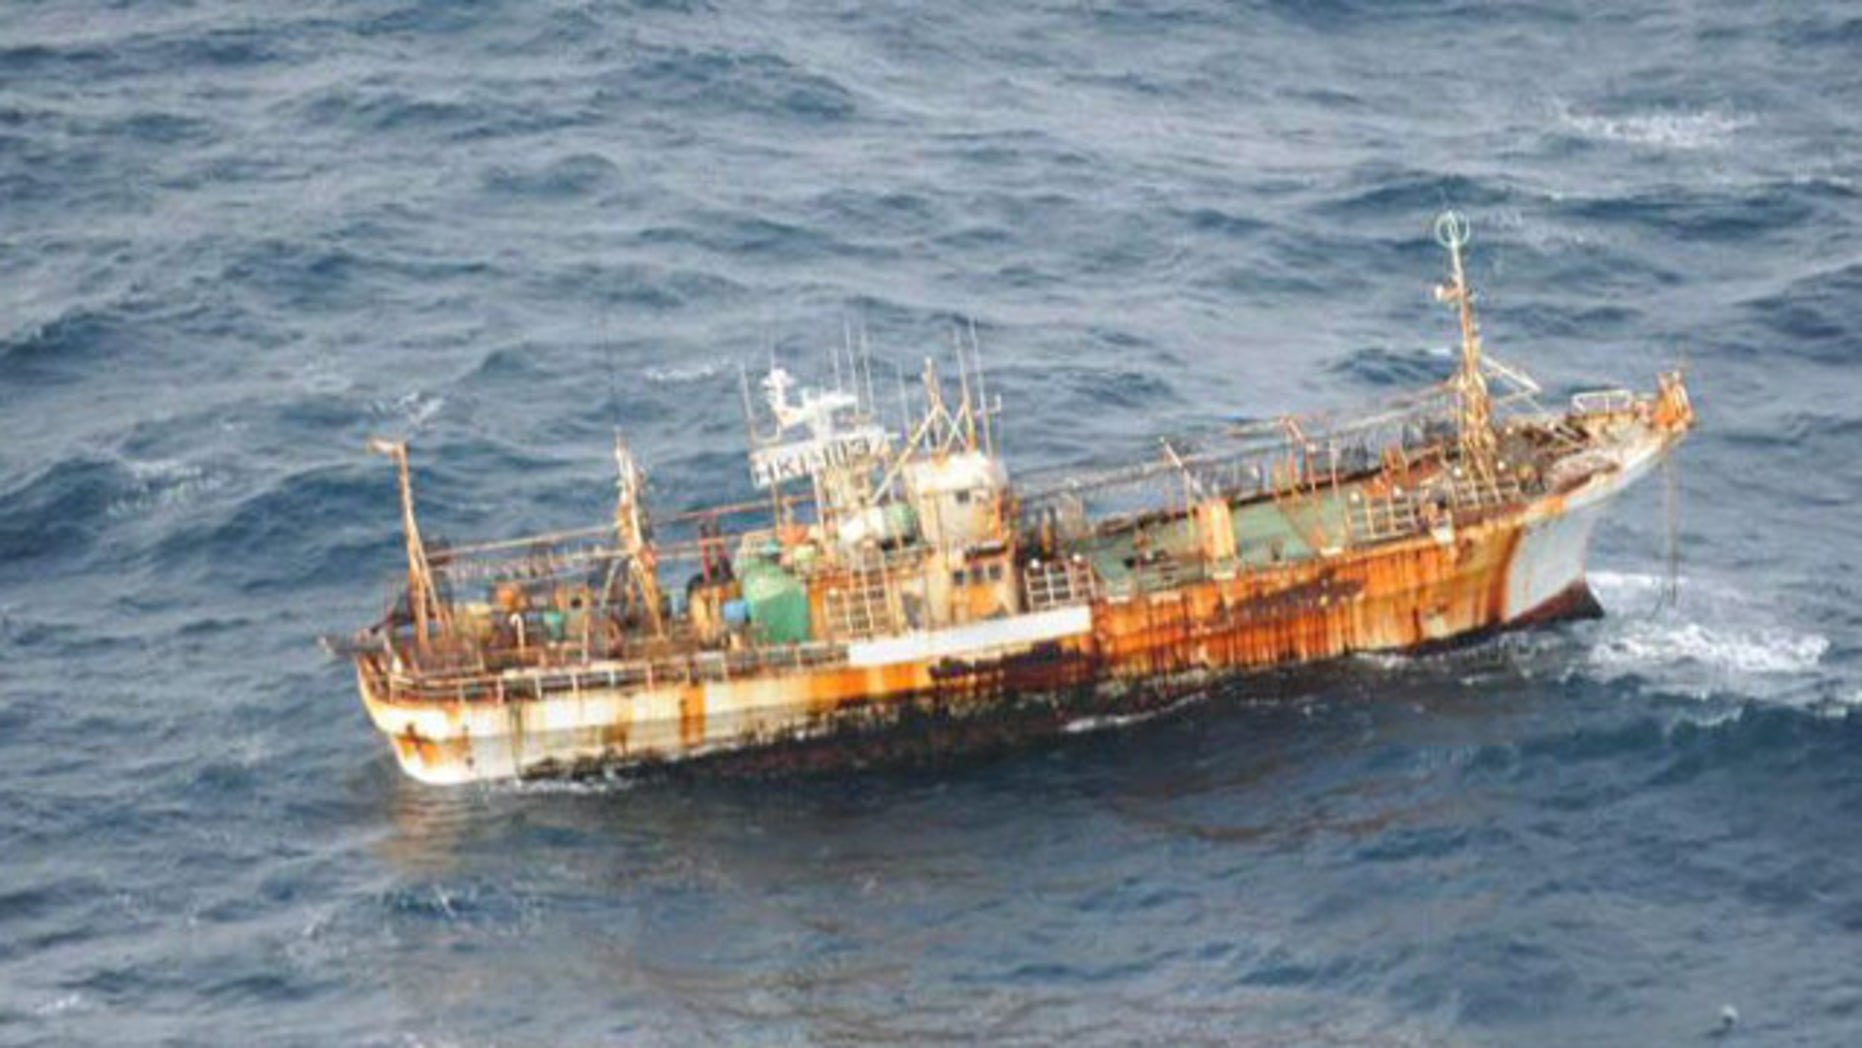 A Japanese fishing boat lost in the Pacific Ocean after the March 2011 earthquake.